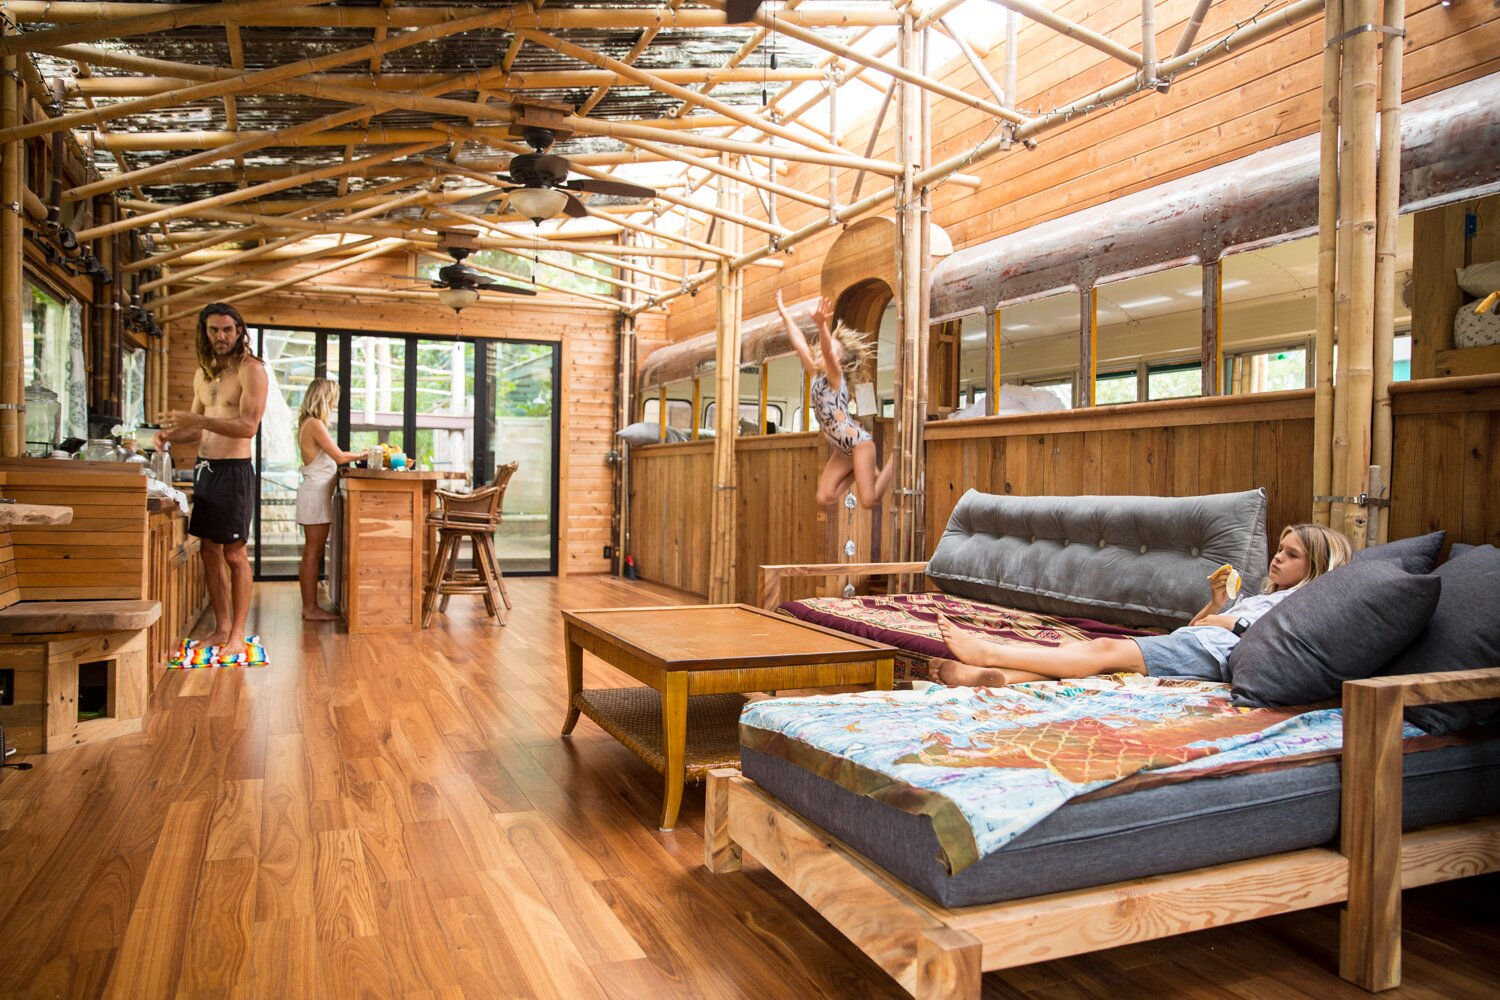 Photo 3 of 10 in These Legendary Surfers' Converted School Bus Connects to a Three-Story Tree House on Hawaii